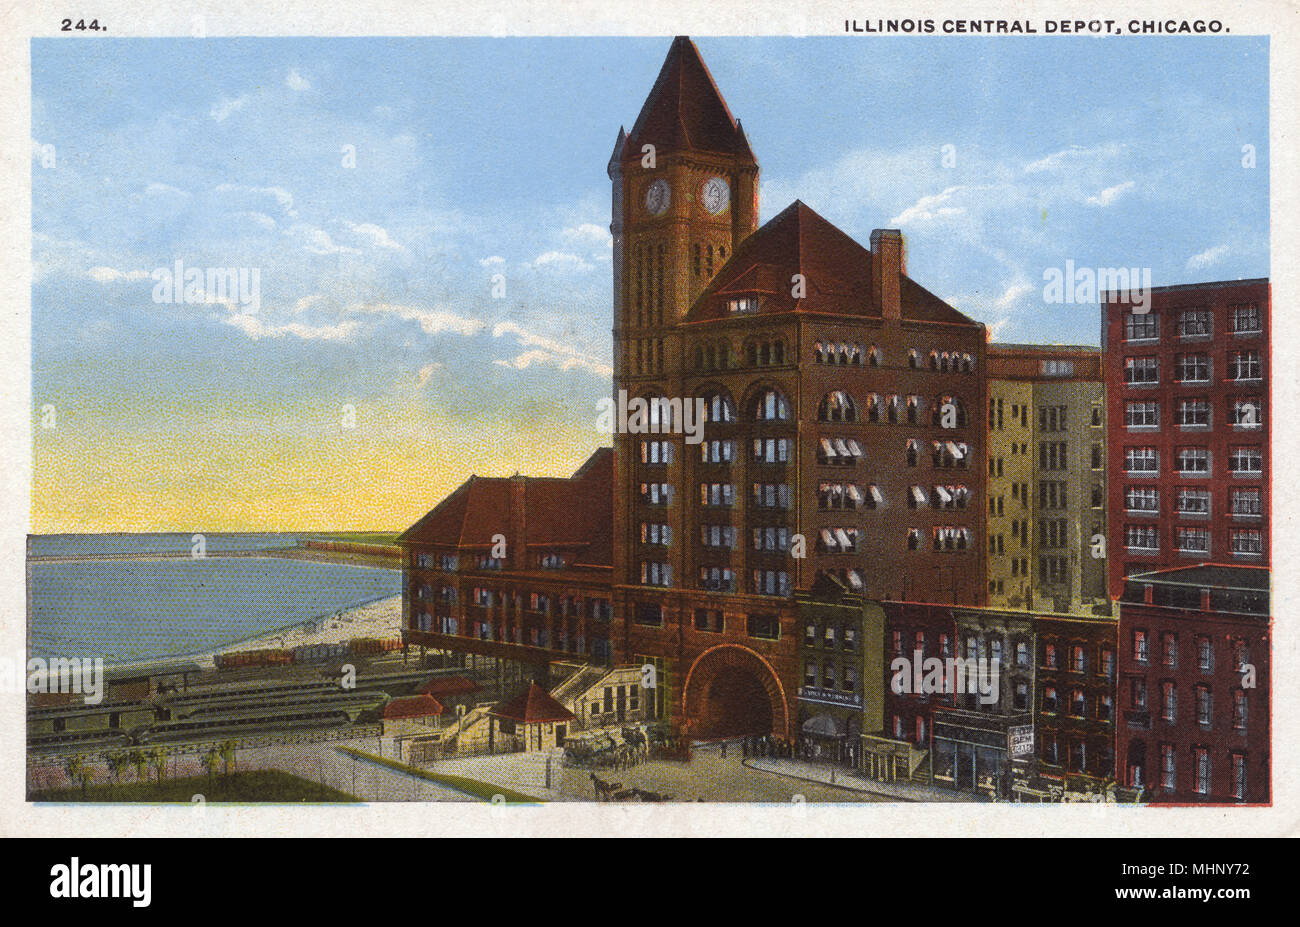 Illinois Central Railroad Depot, Chicago, Illinois, USA, one of the busiest stations in the city.      Date: 1914 - Stock Image